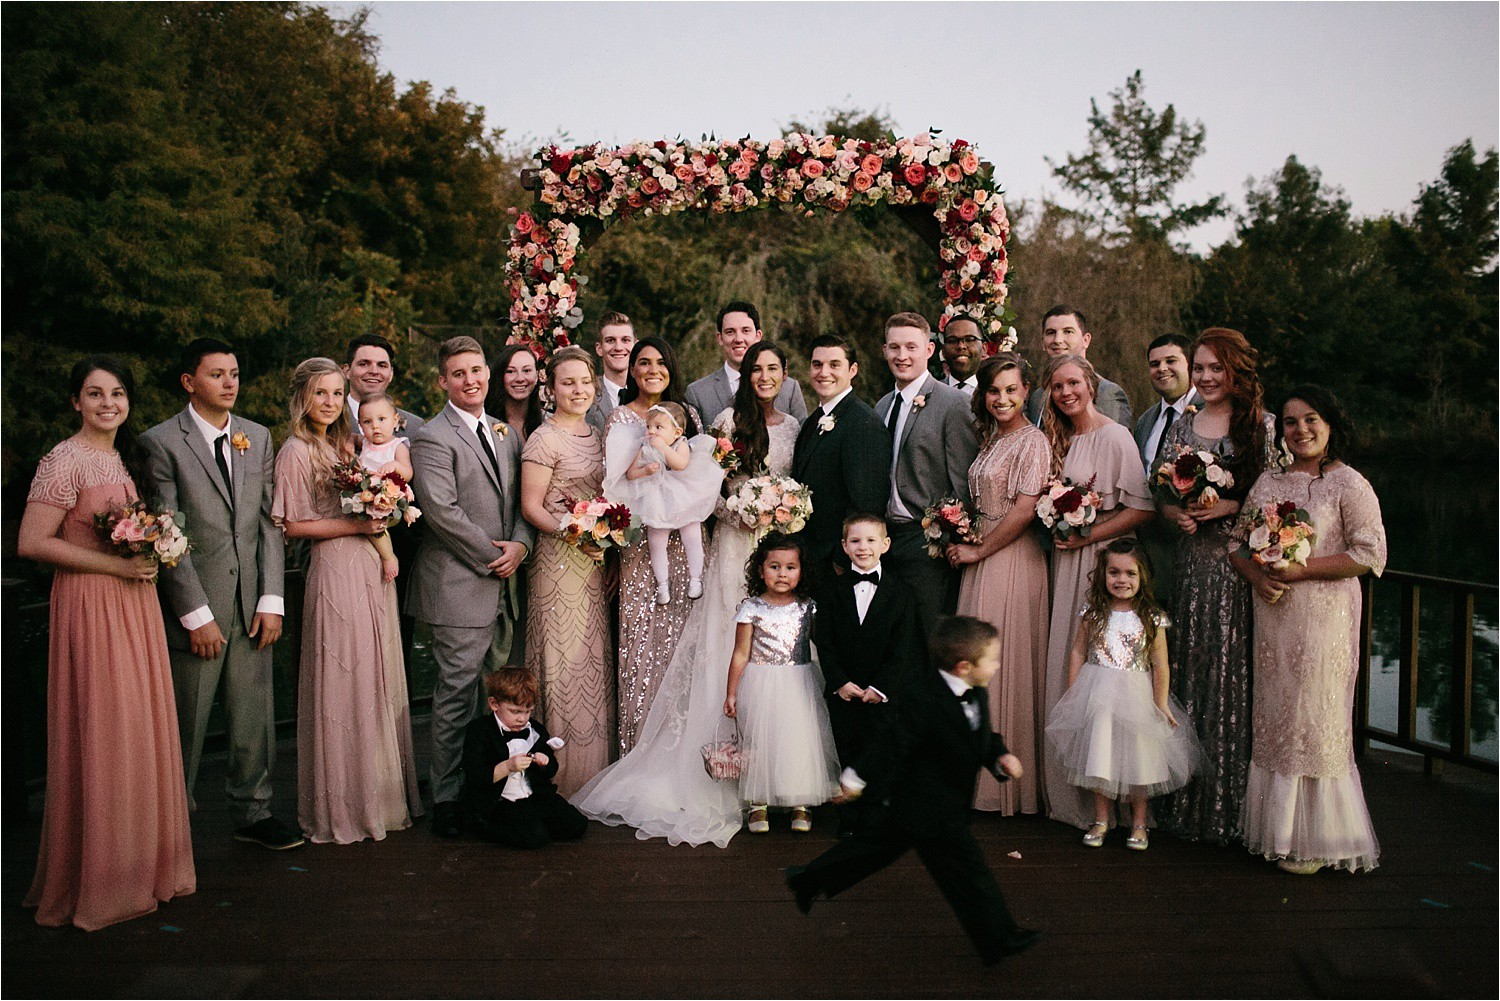 an-elegant-family-ranch-wedding-on-lake-worth-with-burgundy-apricot-and-blush-inspired-decorations-by-north-texas-wedding-photographer-rachel-meagan-photography-_-50